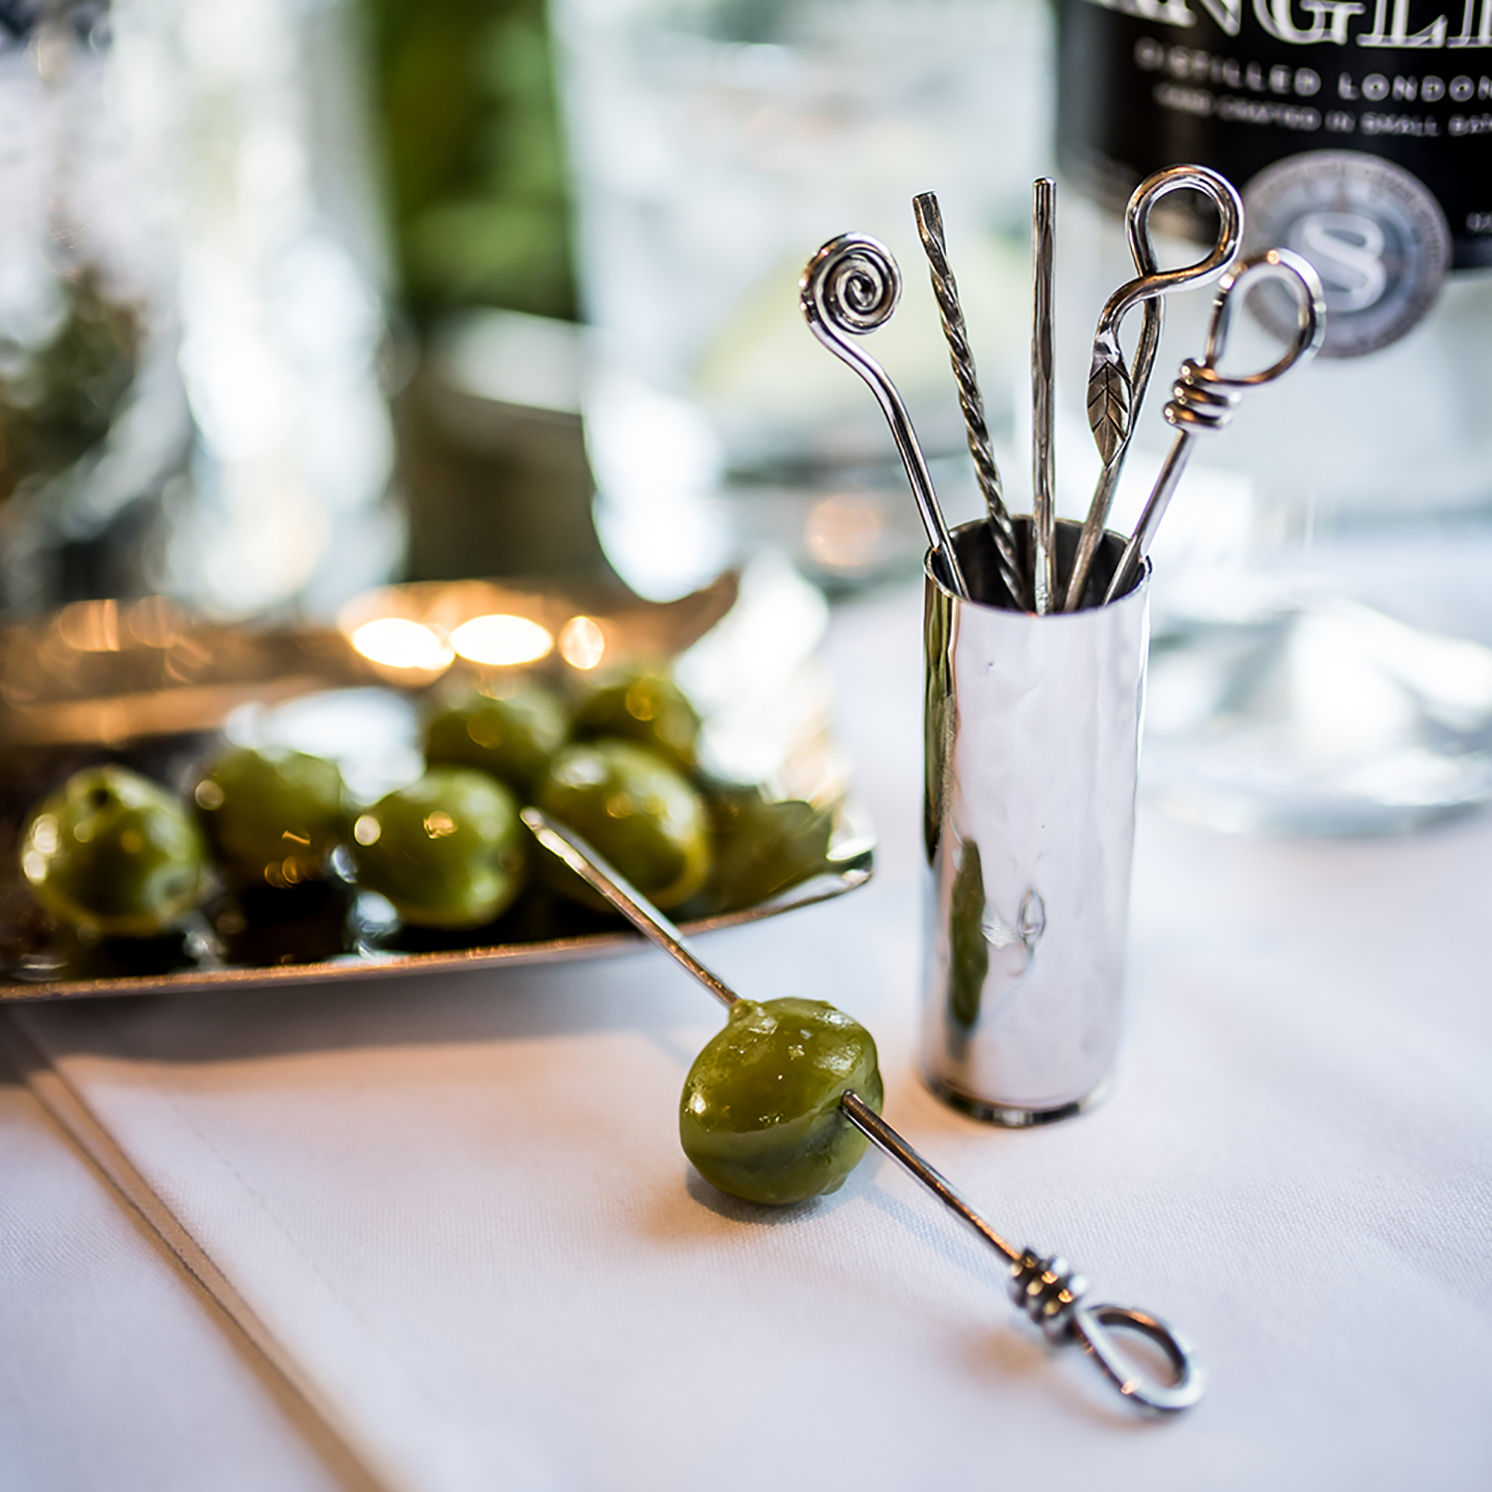 Culinary Concepts – Set of 6 Mixed Olive Picks with Holder in Gift Box